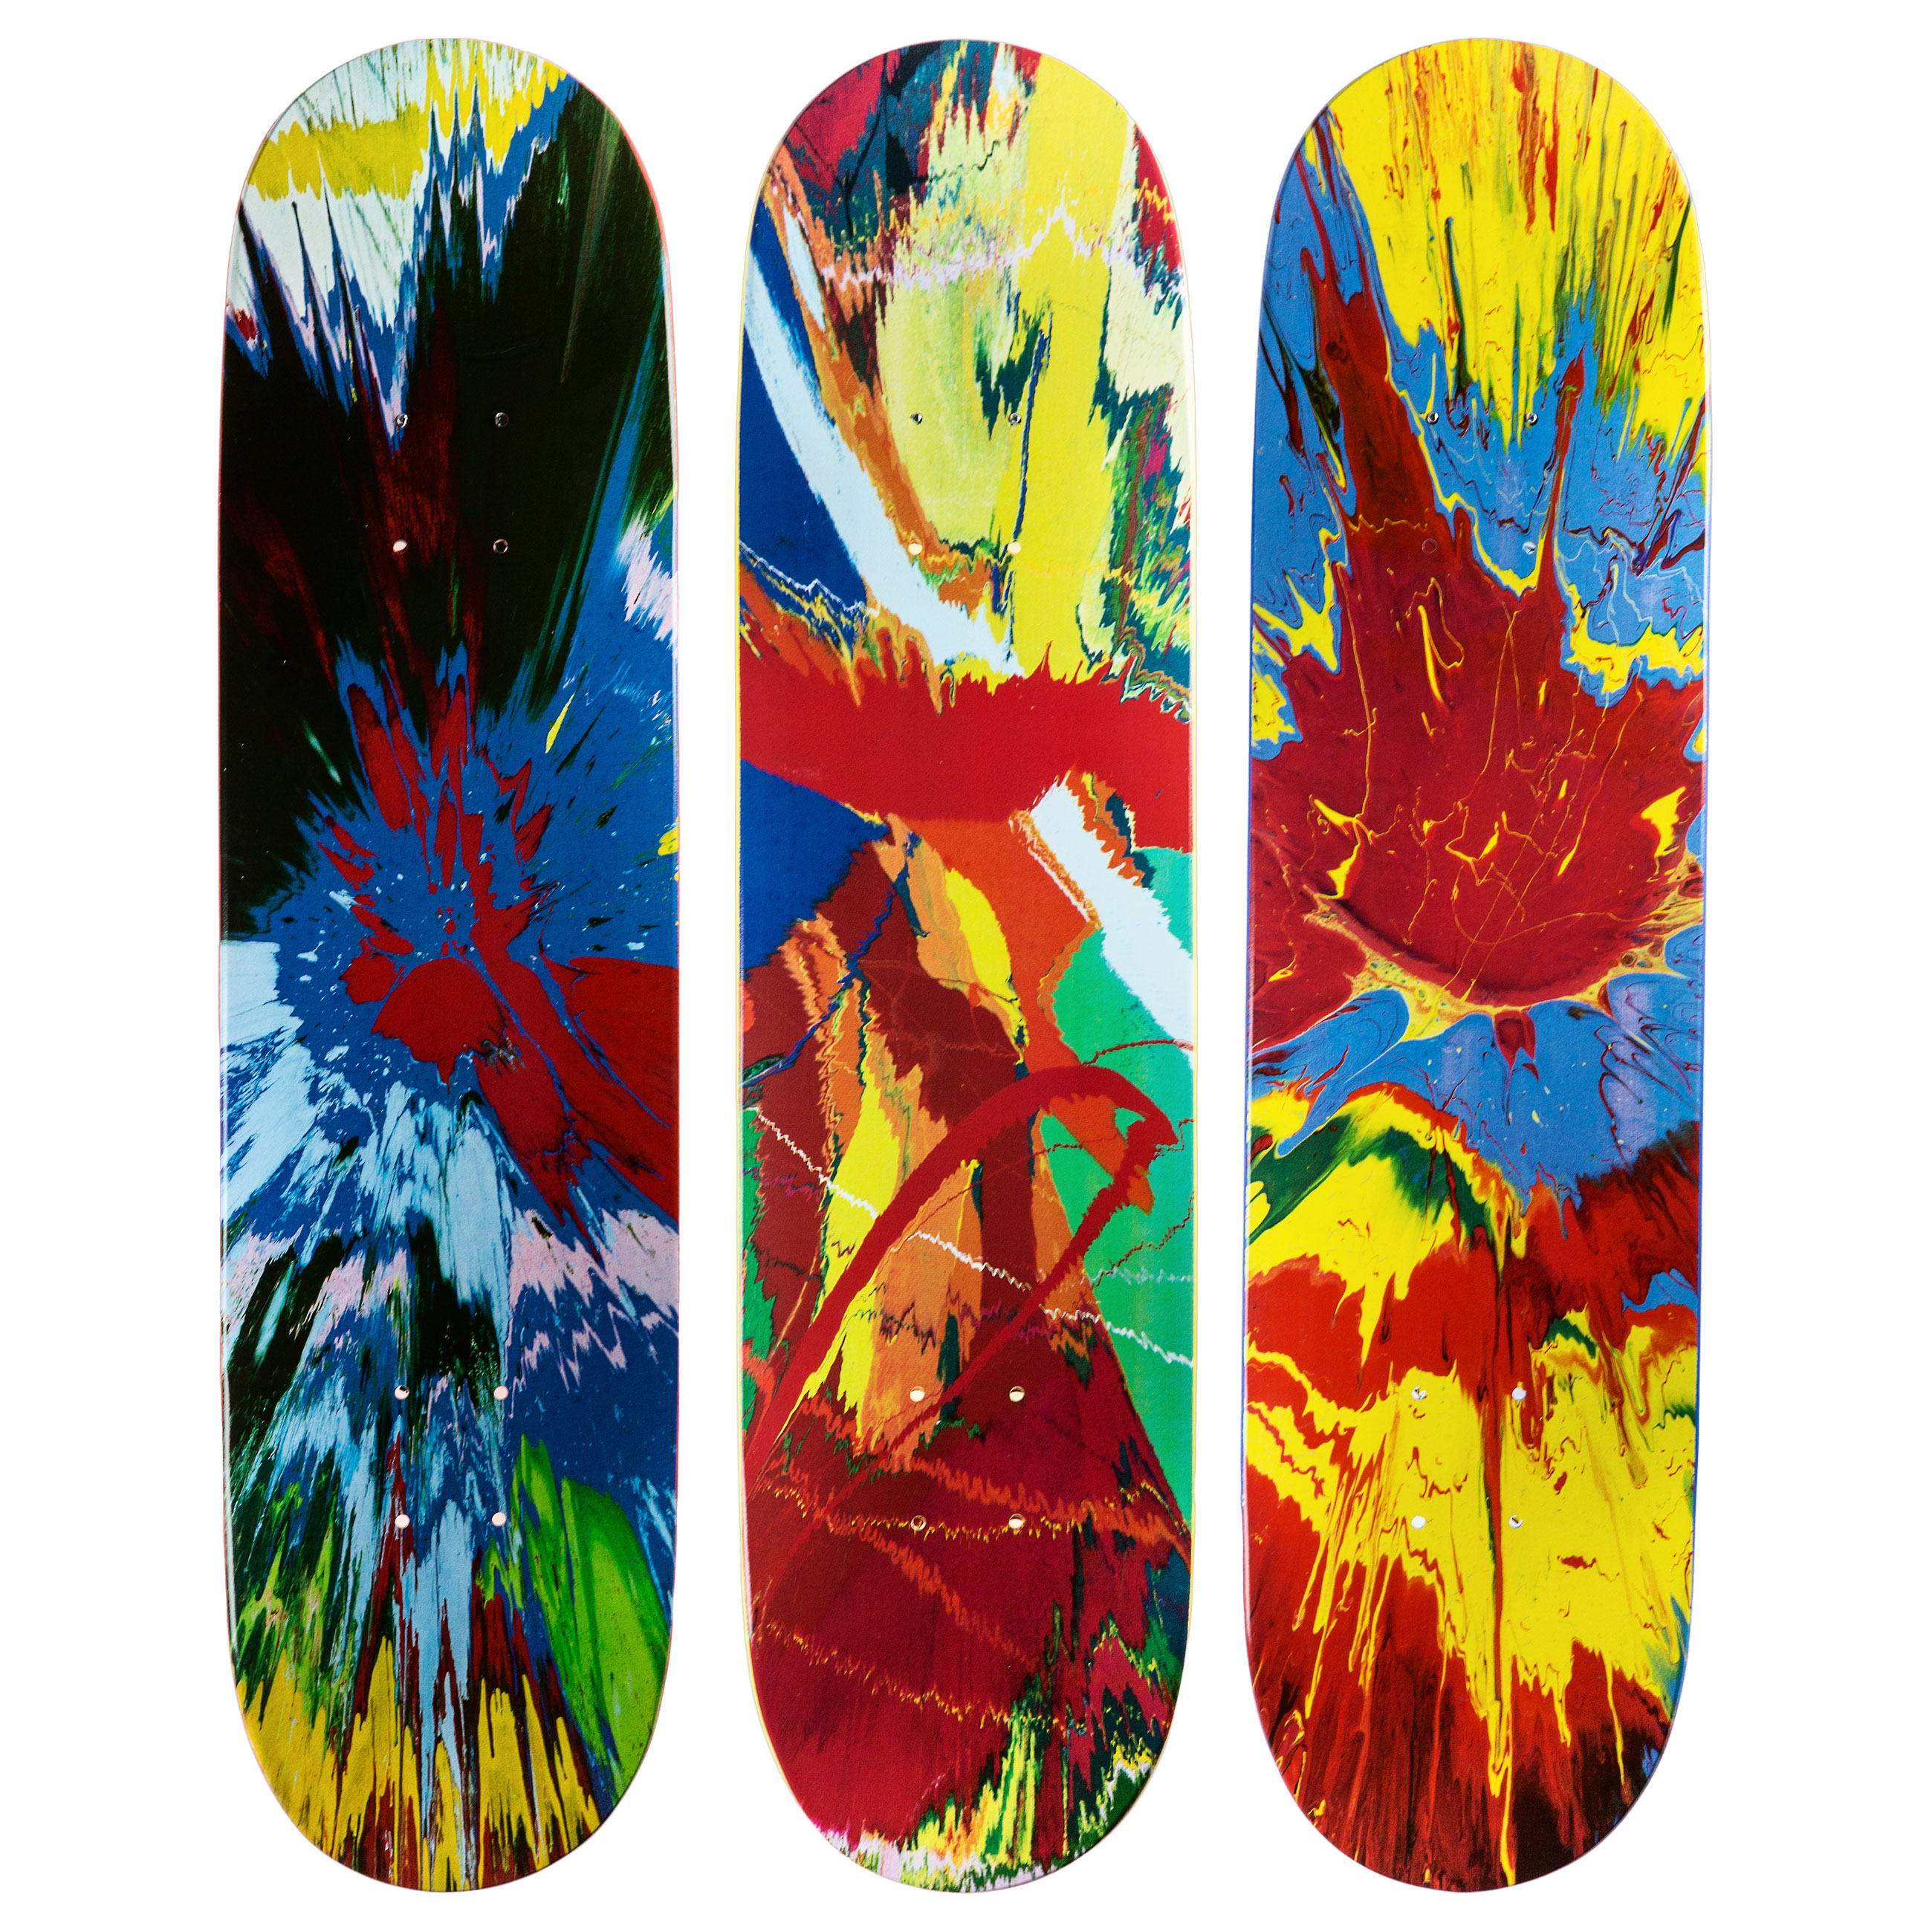 Hirst Spin Skateboard Triptych £2400 shop.tate.org.uk